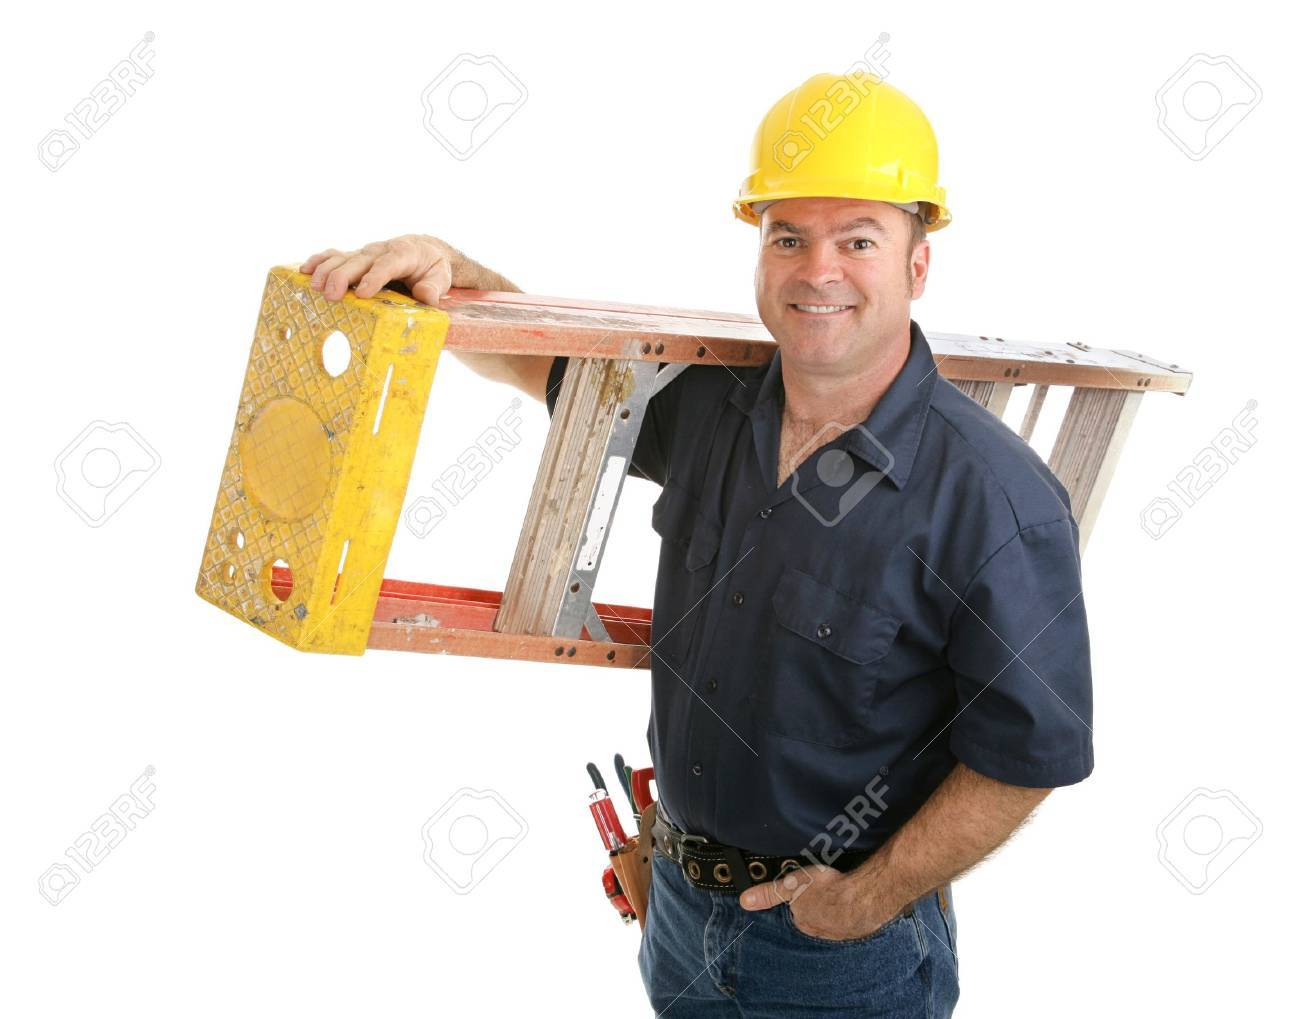 Friendly construction worker carrying ladder.  Isolated on white background. Stock Photo - 3121607